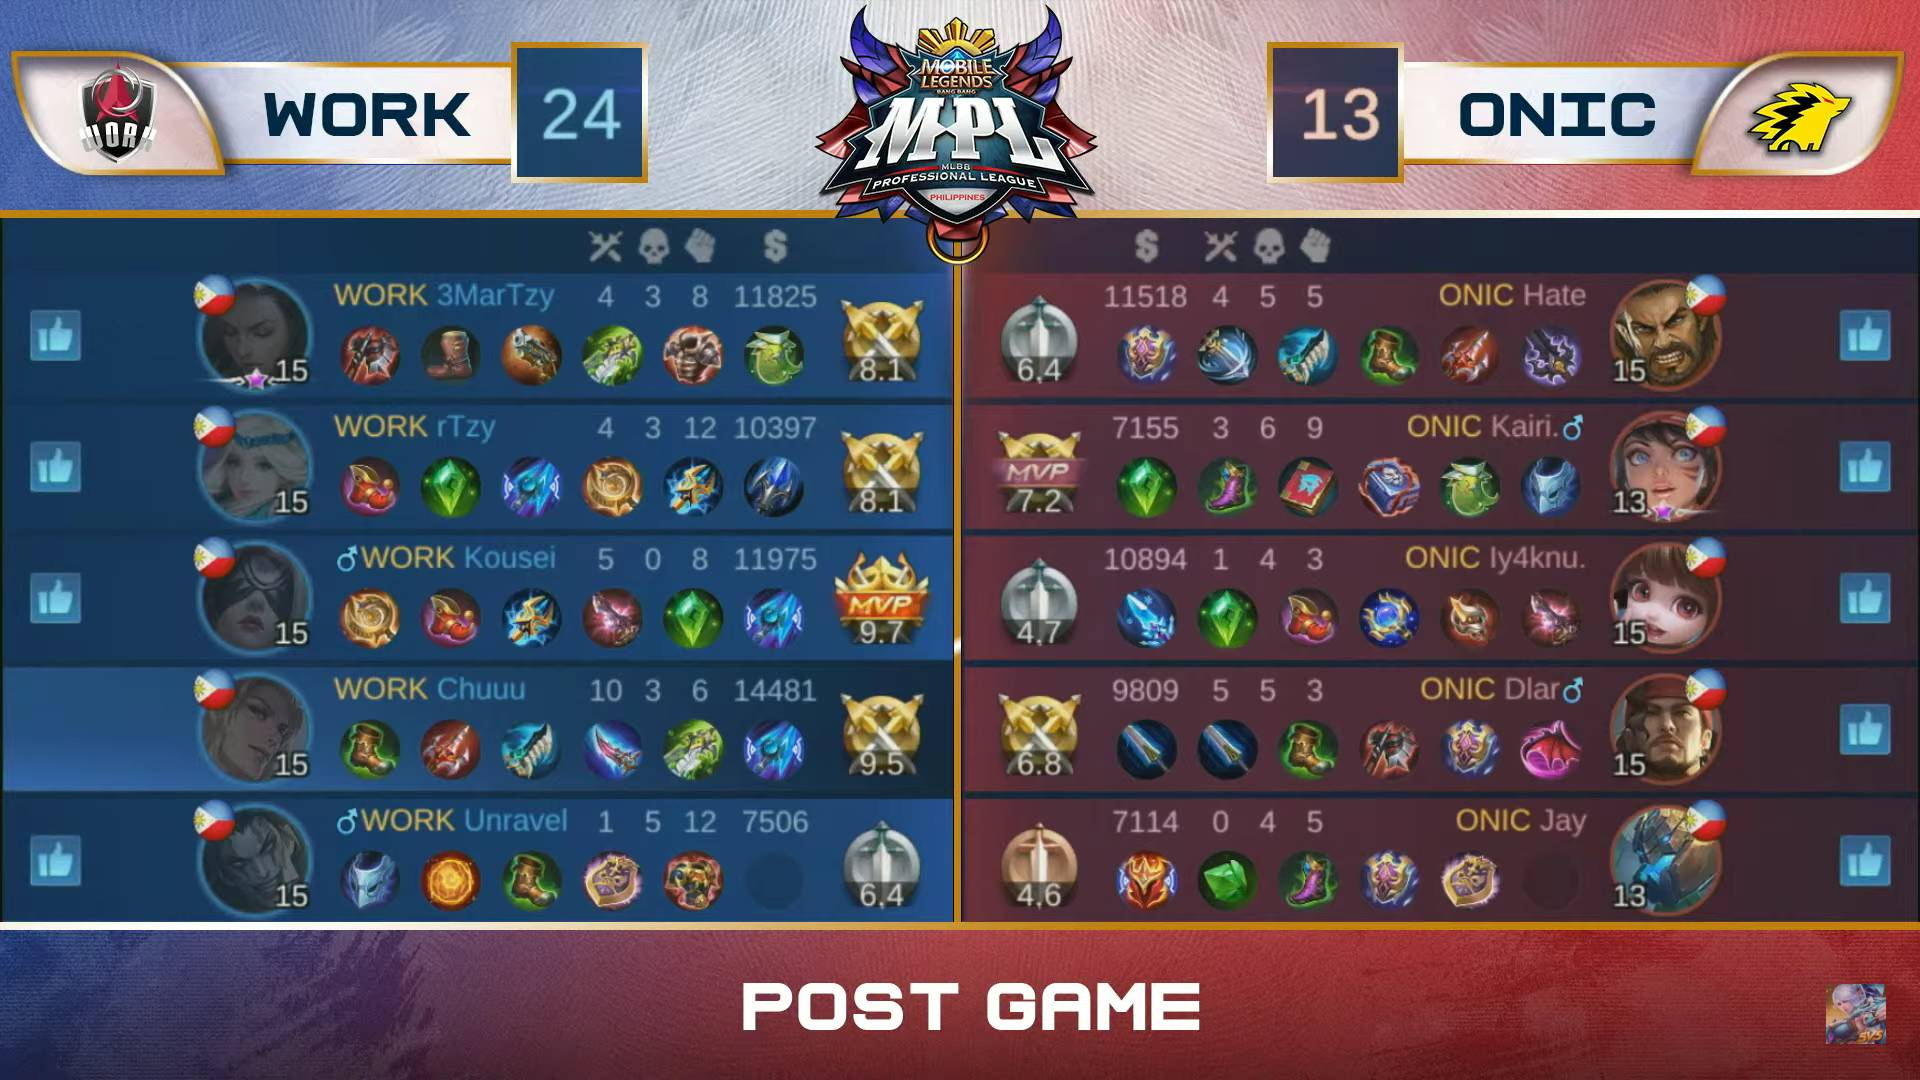 MPL-PH-Season-7-Work-Auster-def-ONIC-Game-2 Work Auster sweeps ONIC, all set to claim MPL PH upper bracket playoff ESports Mobile Legends MPL-PH News  - philippine sports news